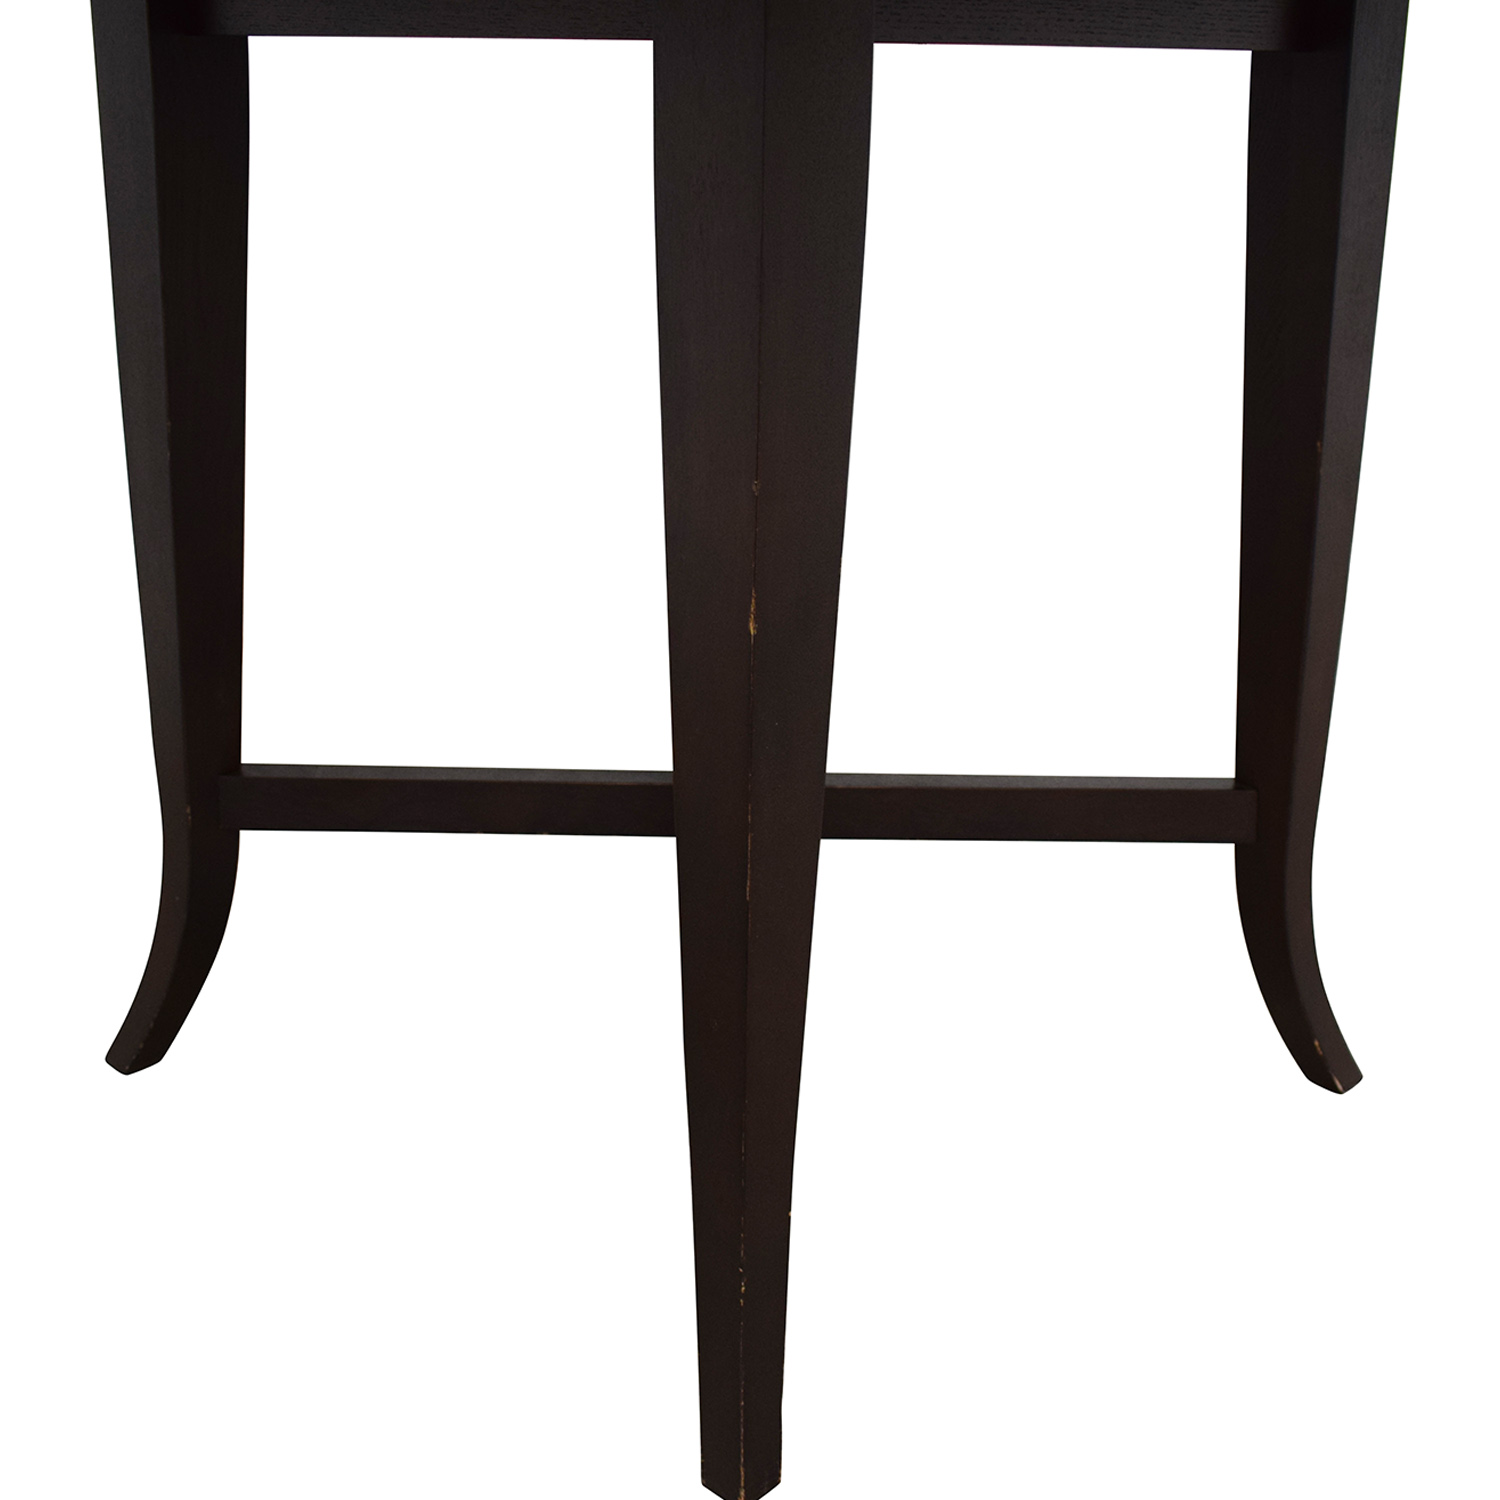 Crate & Barrel Crate & Barrel Round Dining Table dark brown